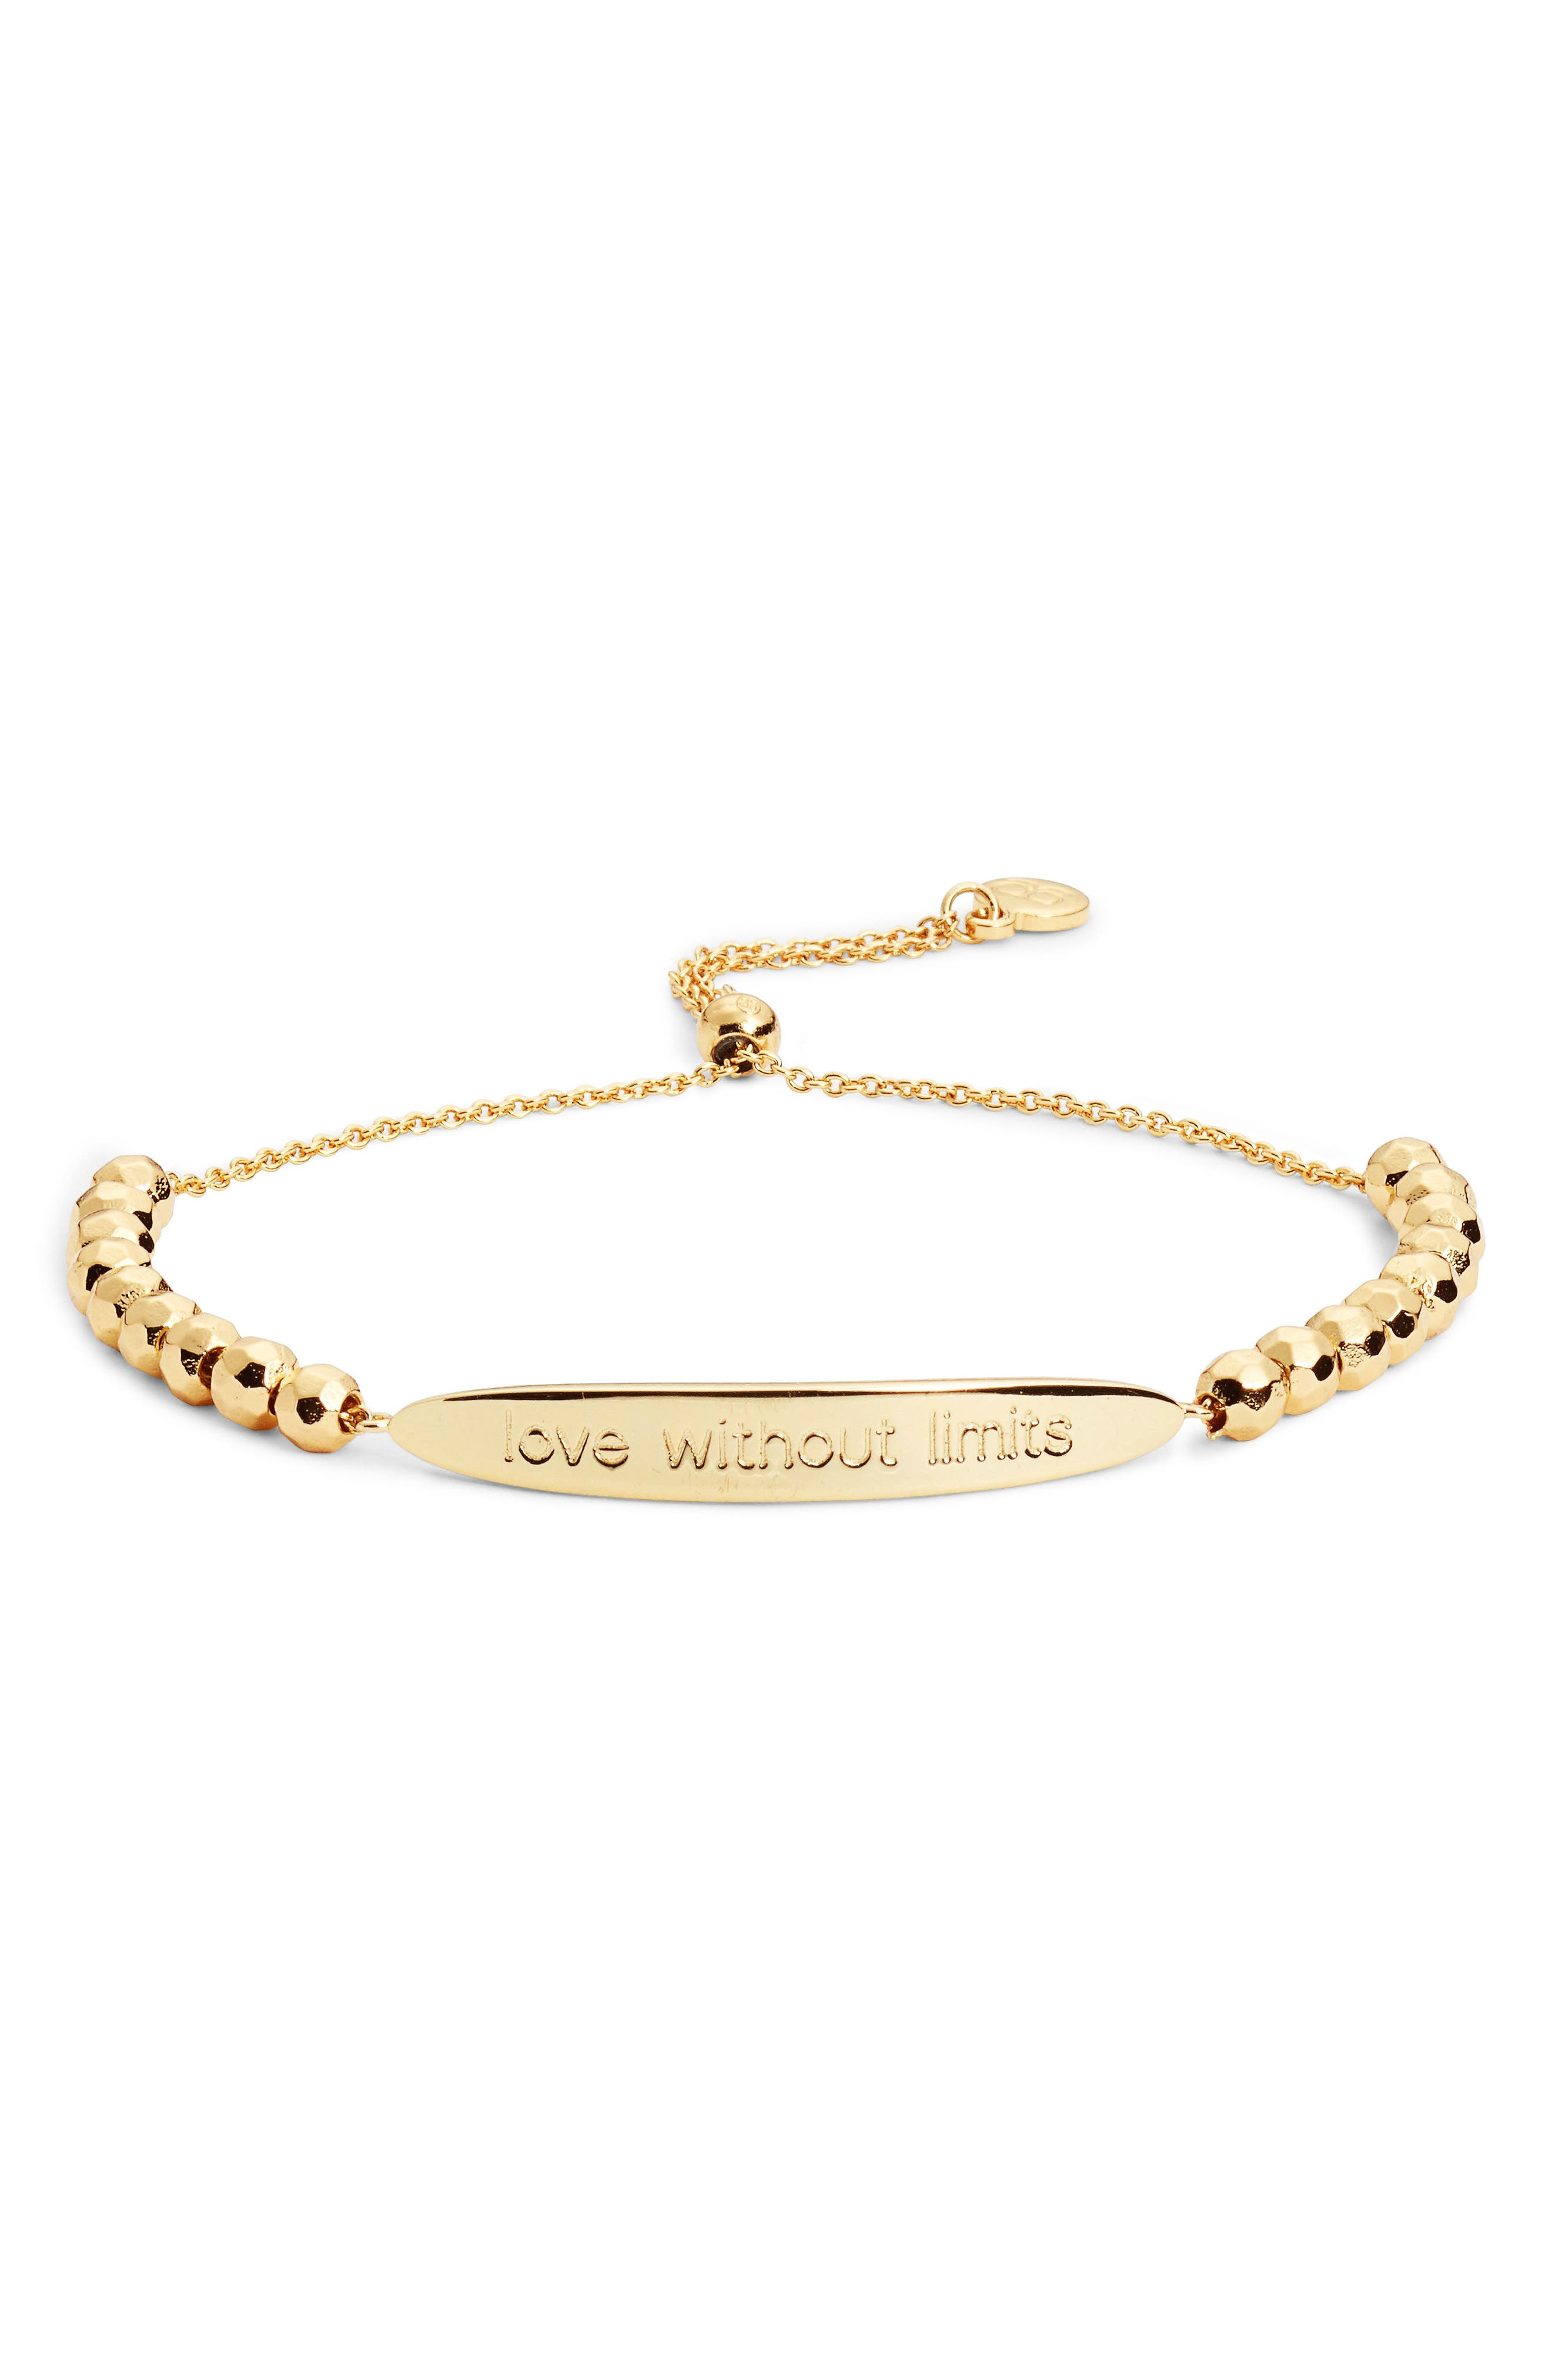 gorjana Power Intention Love without Limits Bracelet